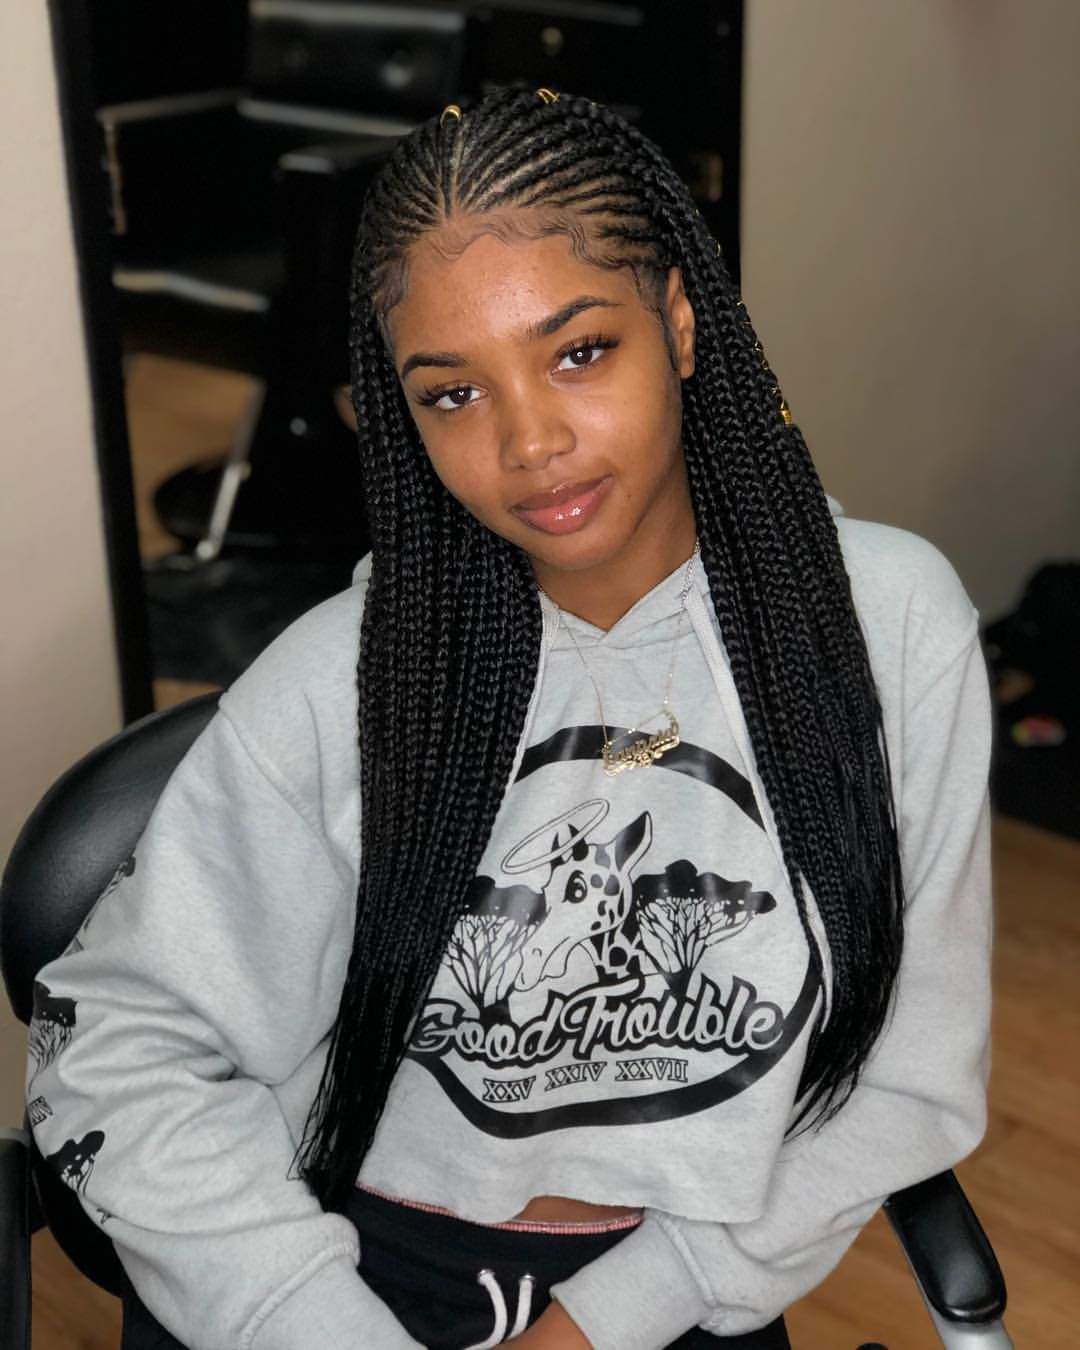 41 Best Black Braided Hairstyles To Stand Out - Page 2 - Eazy Glam